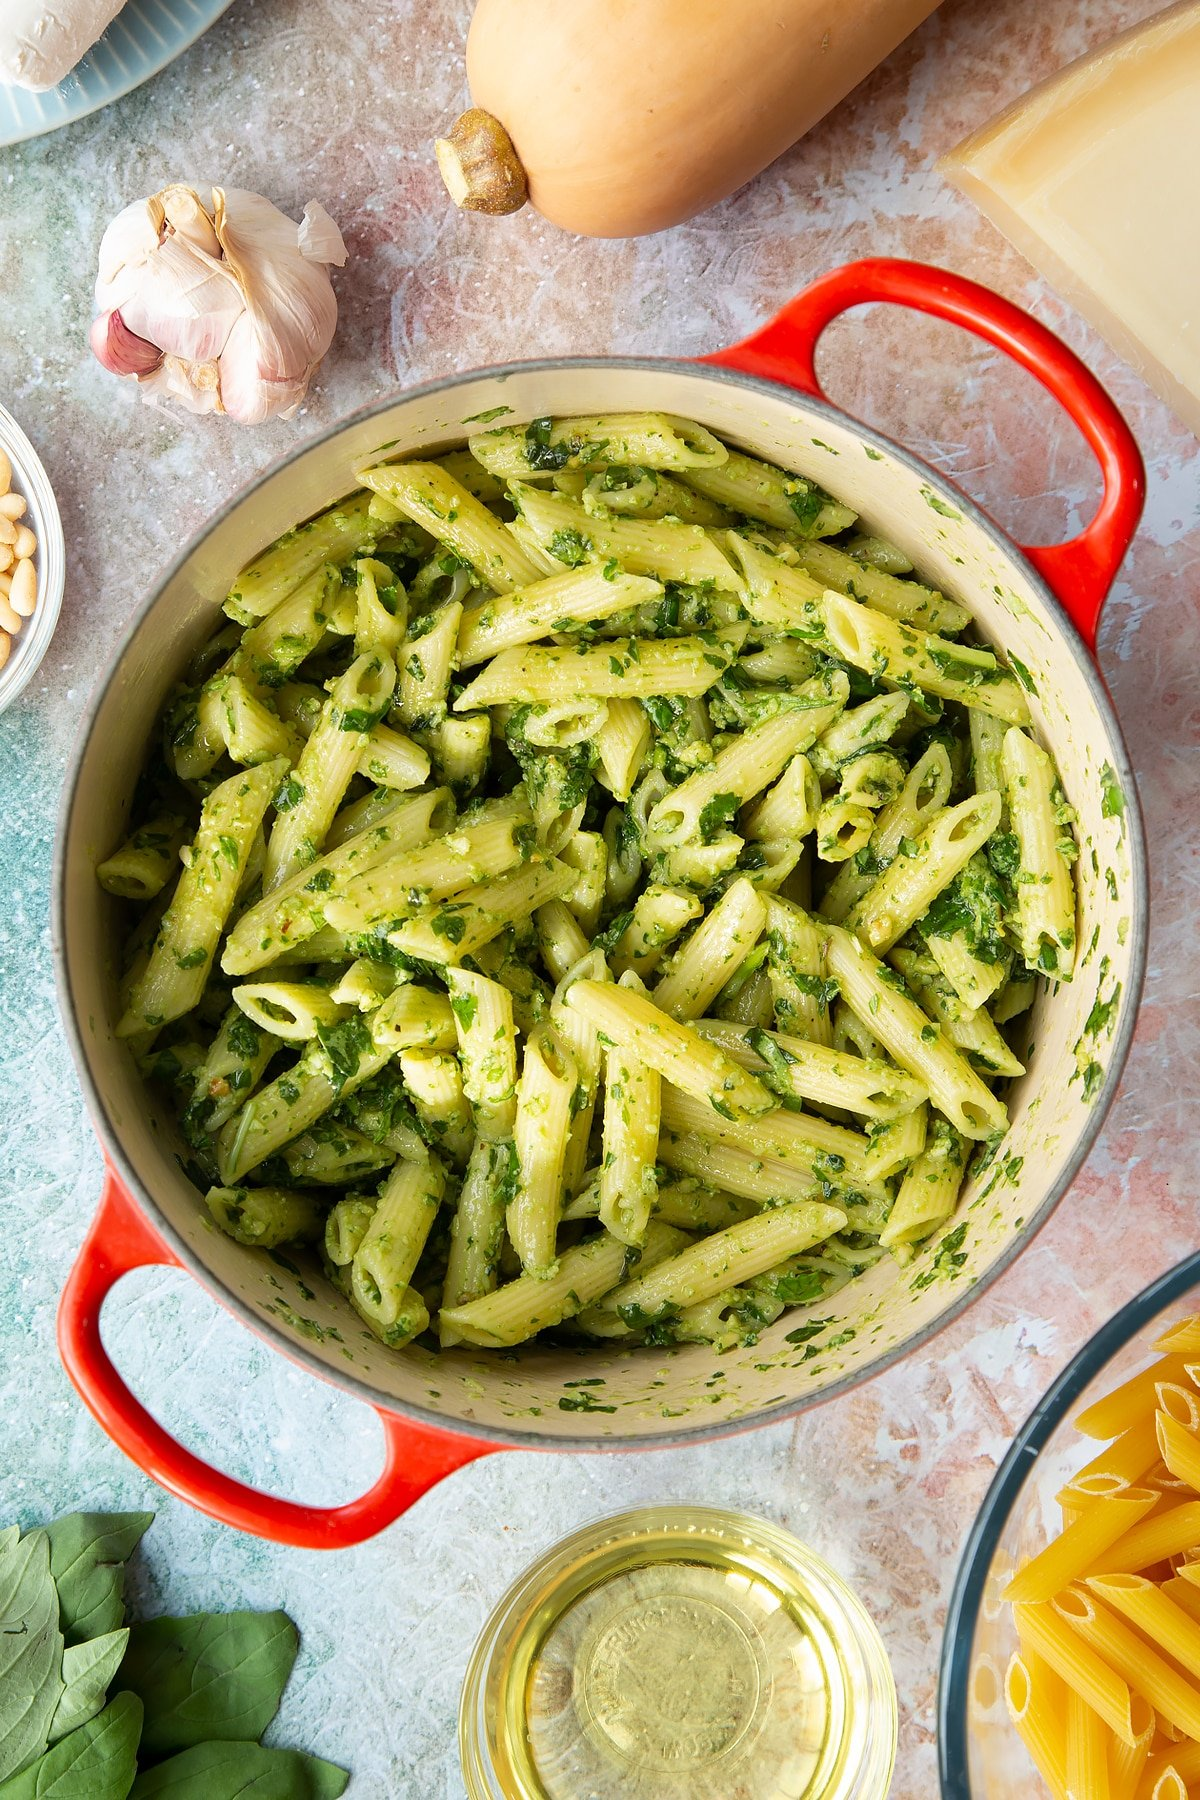 Penne pasta tossed with fresh pesto in a pan. Ingredients to make penne with butternut squash and goat cheese surround the pan.